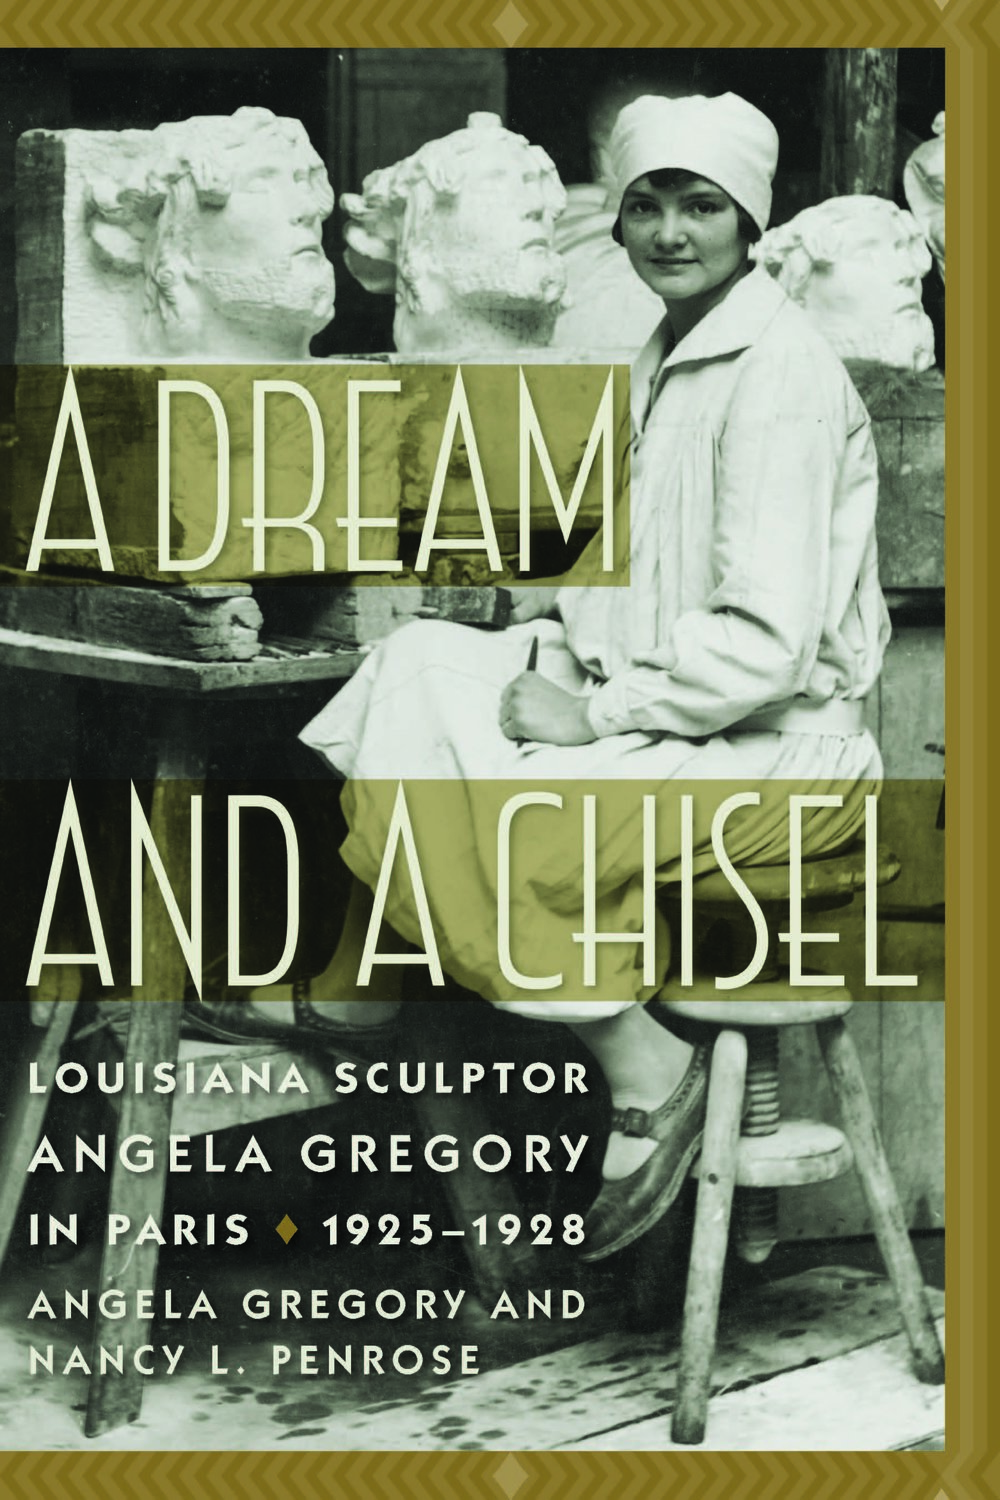 - FORTHCOMING...January 2019 University of South Carolina Press>A Dream and a Chisel: Louisiana Sculptor Angela Gregory in Paris, 1925-1928 by Angela Gregory and Nancy L. Penrose portrays a young artist's formative years, recounted in her own words.Angela Gregory (1903–1990) was an internationally recognized American sculptor and a professor and sculptor in residence from 1962 to 1976 at St. Mary's Dominican College in New Orleans, Louisiana. A graduate of the Newcomb Art School (1925) and Tulane University (1940), she was a fellow of the National Sculpture Society. In 1982 she was inducted as one of France's Chevalier de l'Ordre des Arts et des Lettres (Knight of the Order of Arts and Letters).Pre-order through Elliott Bay Books in Seattle>